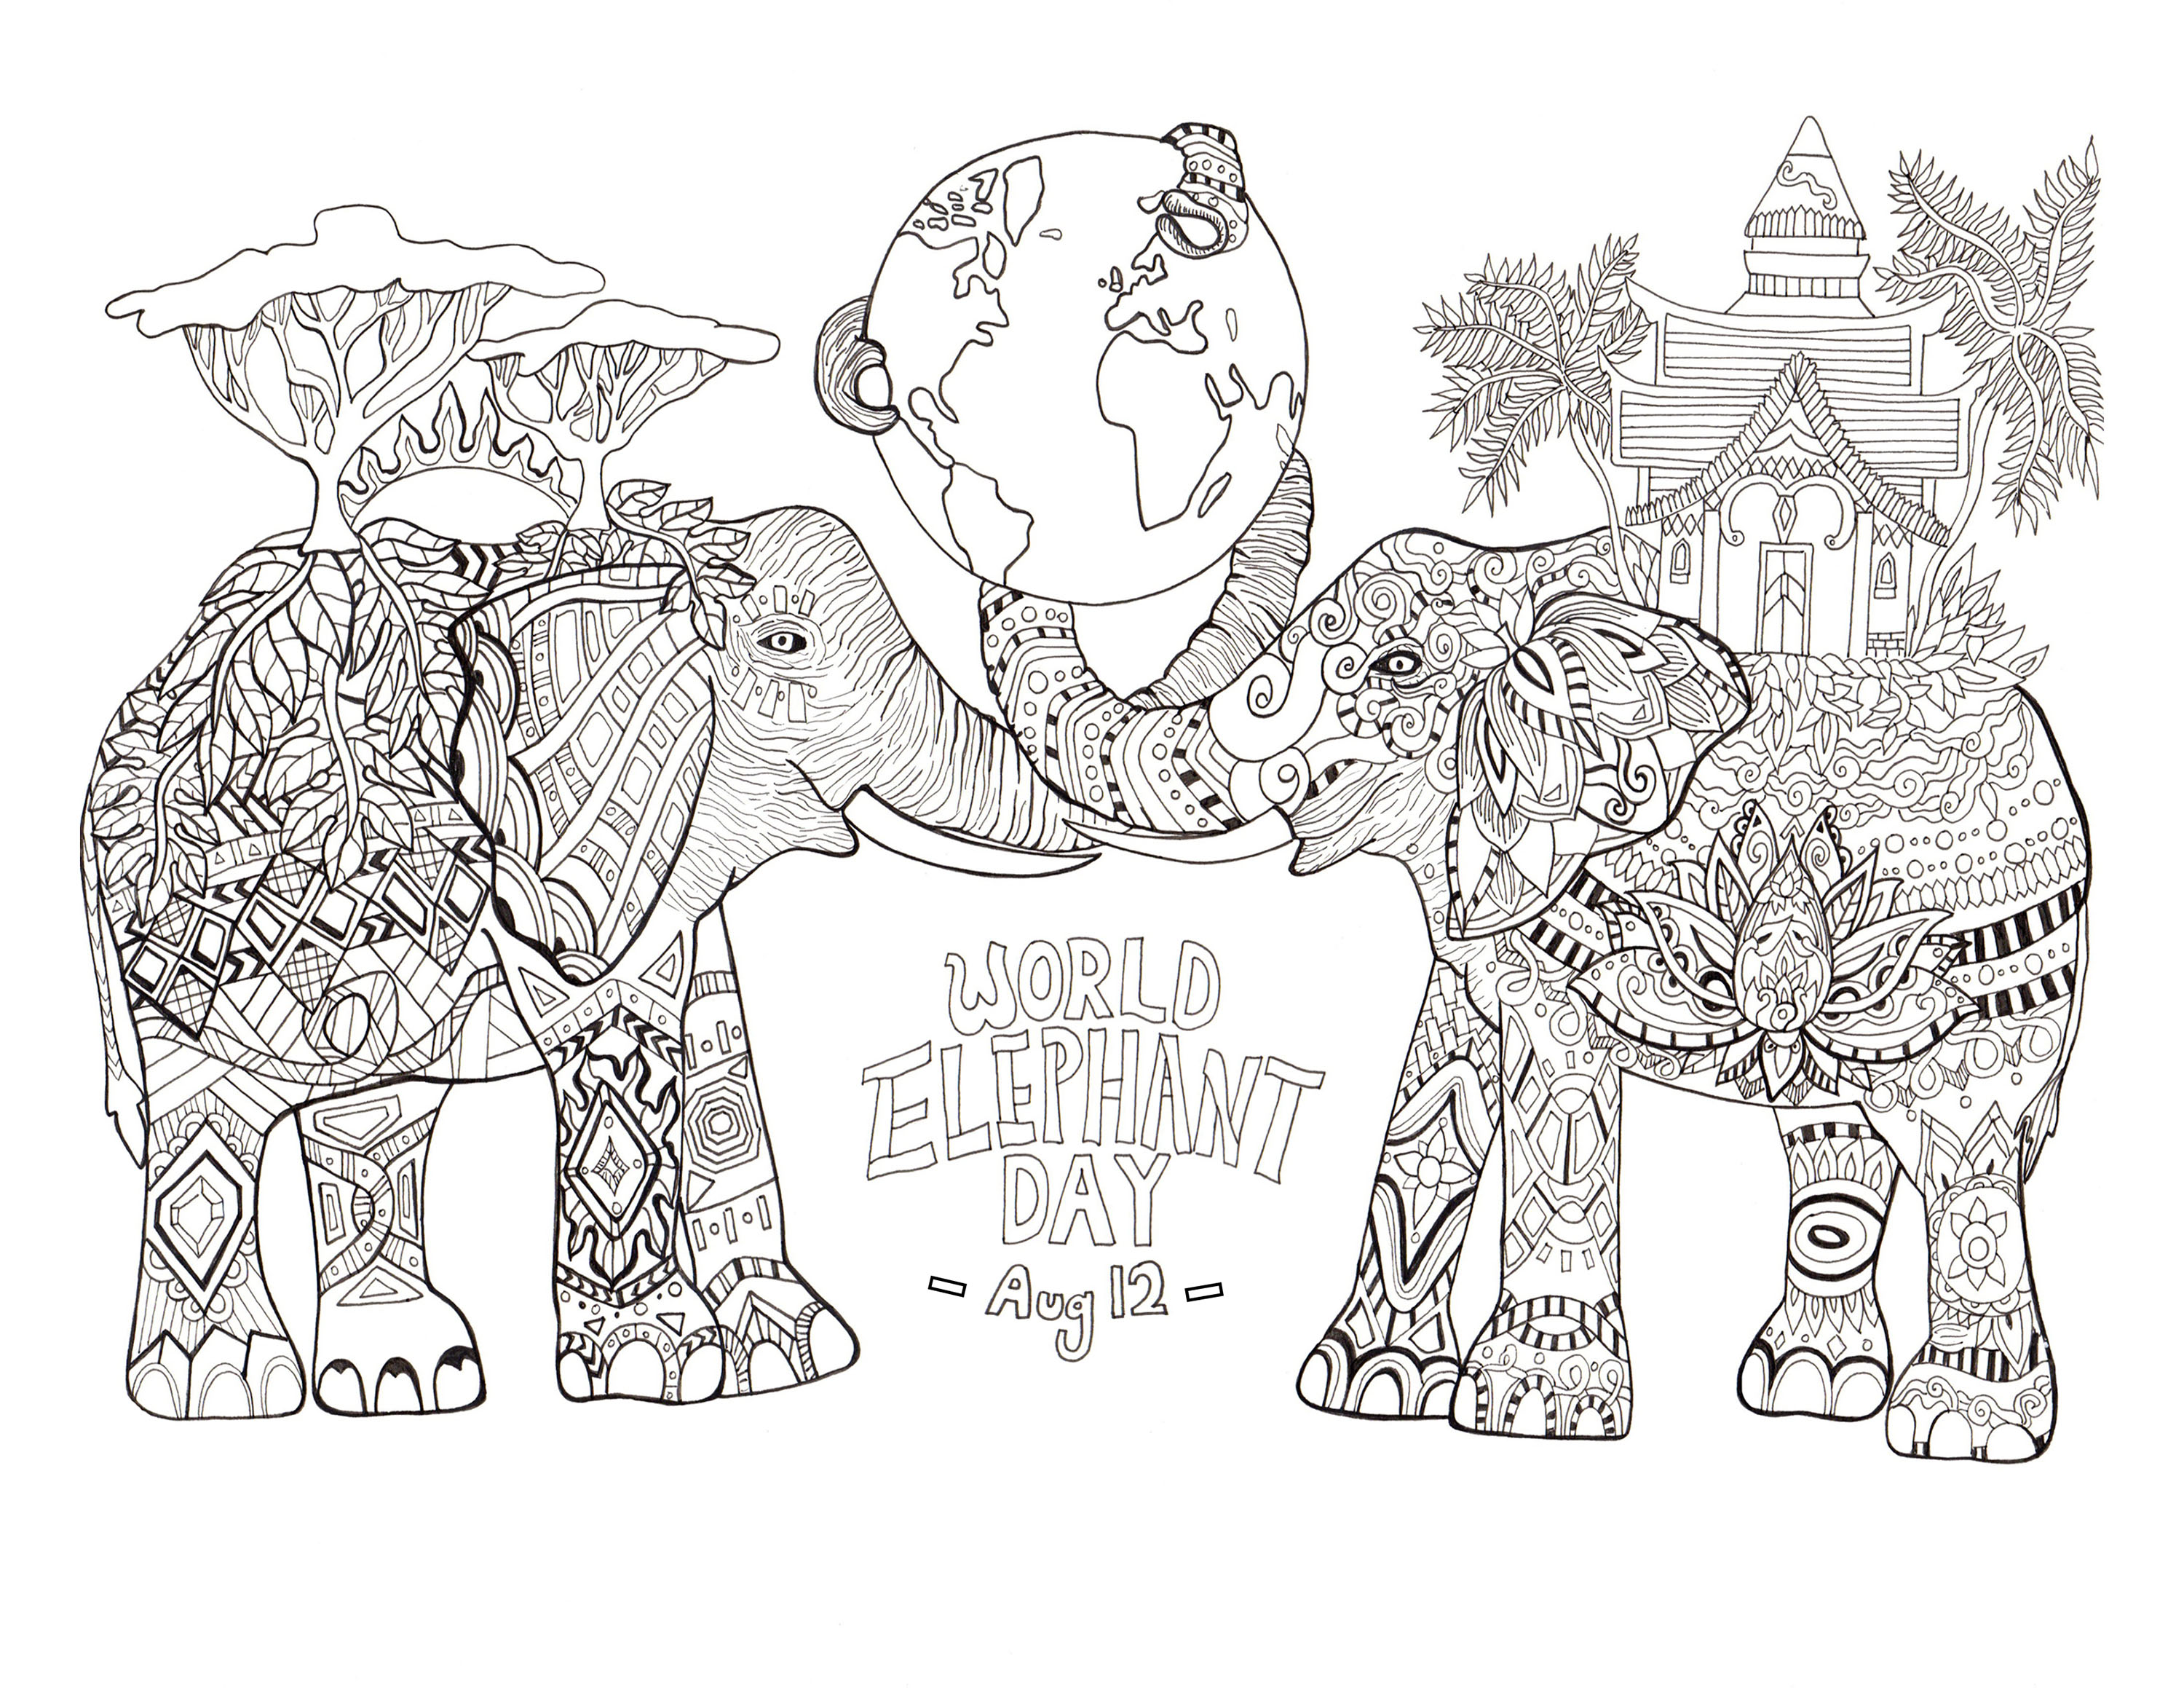 World Elephant Day Elephants Coloring Pages For Adults Justcolor